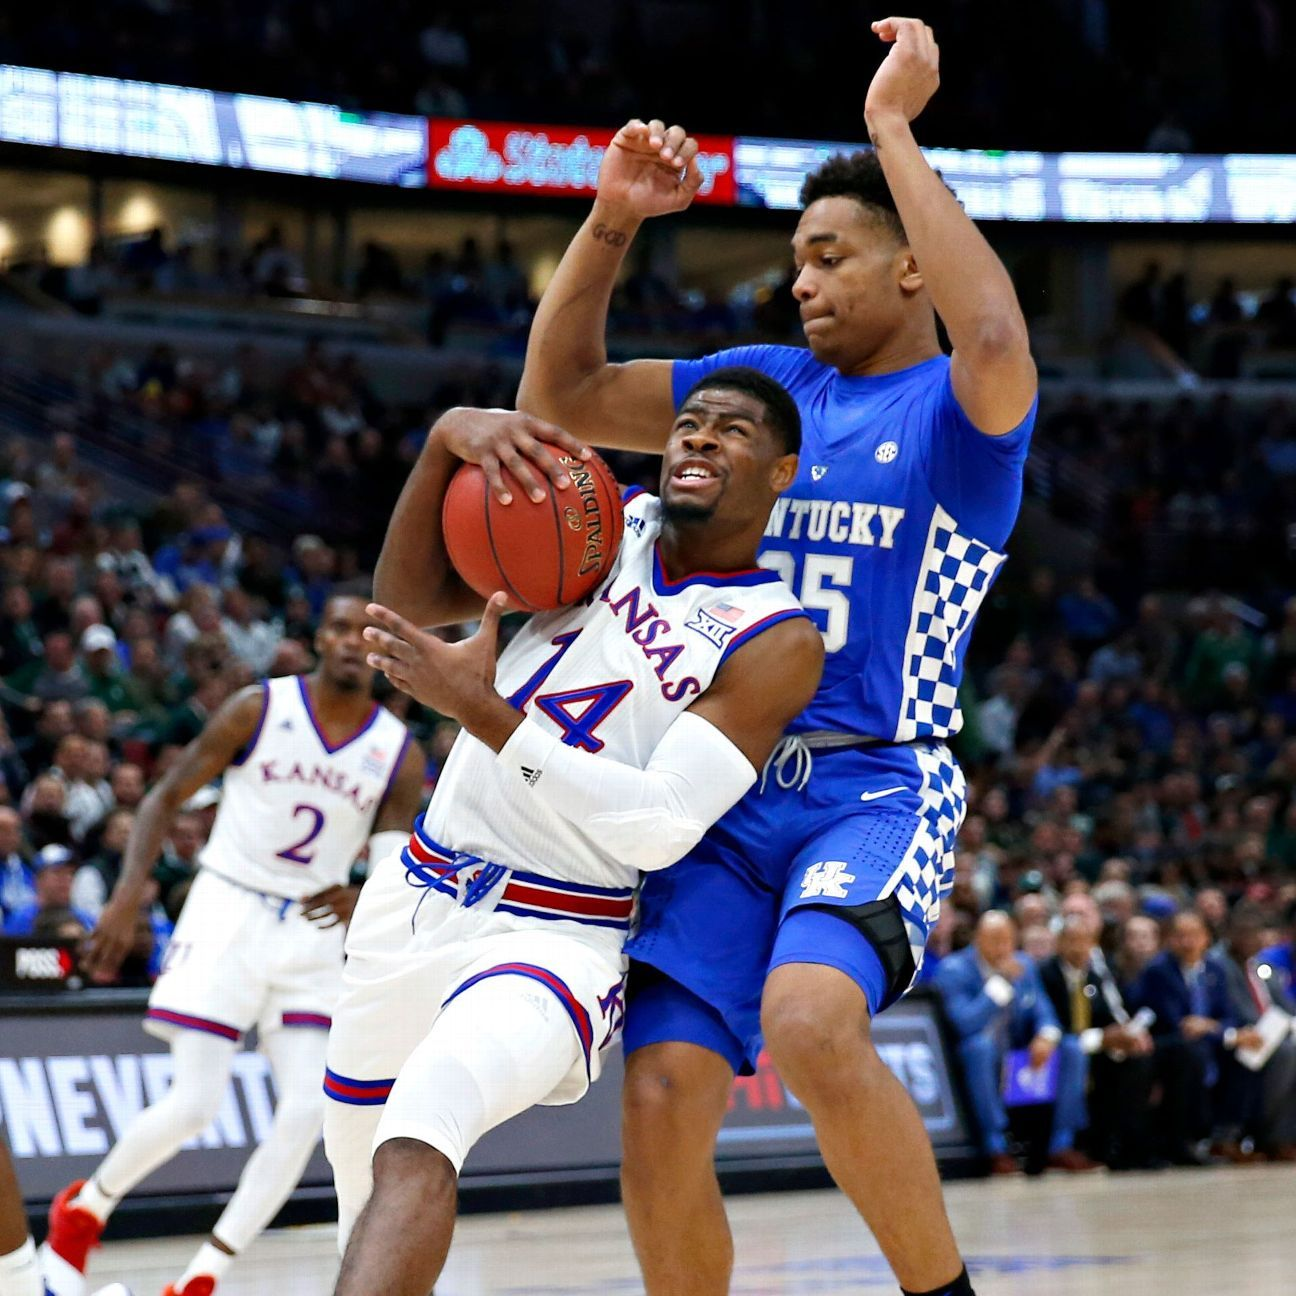 Duke Blue Devils, Kansas Jayhawks, Kentucky Wildcats, Michigan State Spartans Give College Basketball A Night The Game Needed